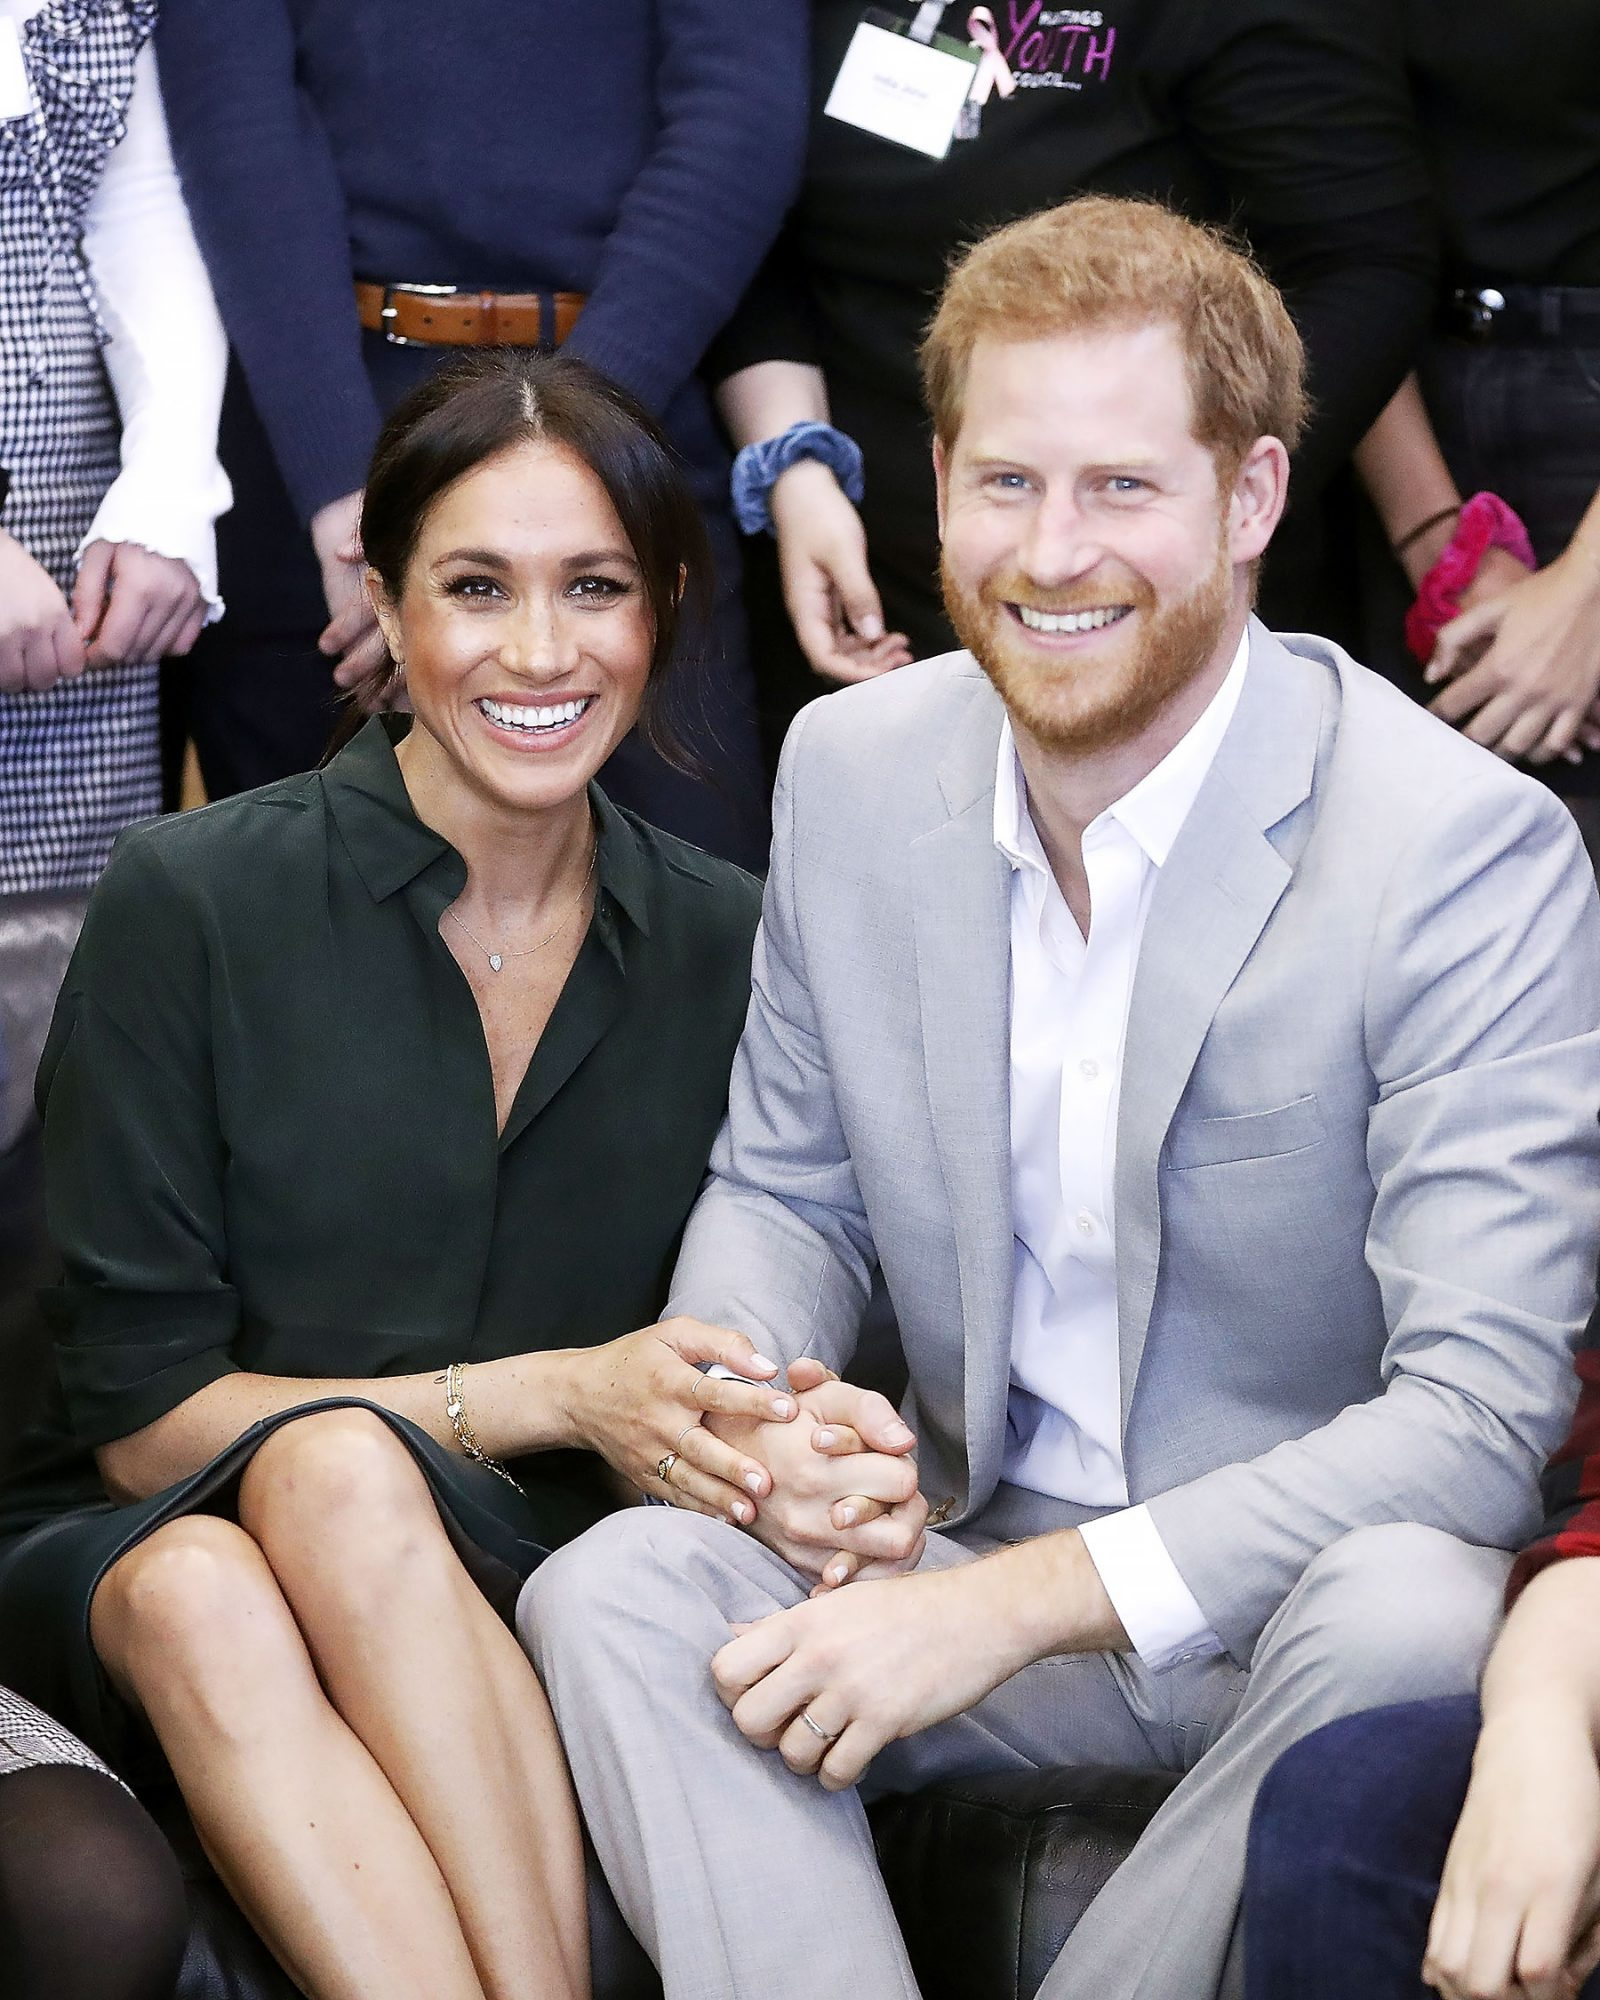 Meghan Markle Is Pregnant! Prince Harry and Meghan Announce They Are Expecting First Child